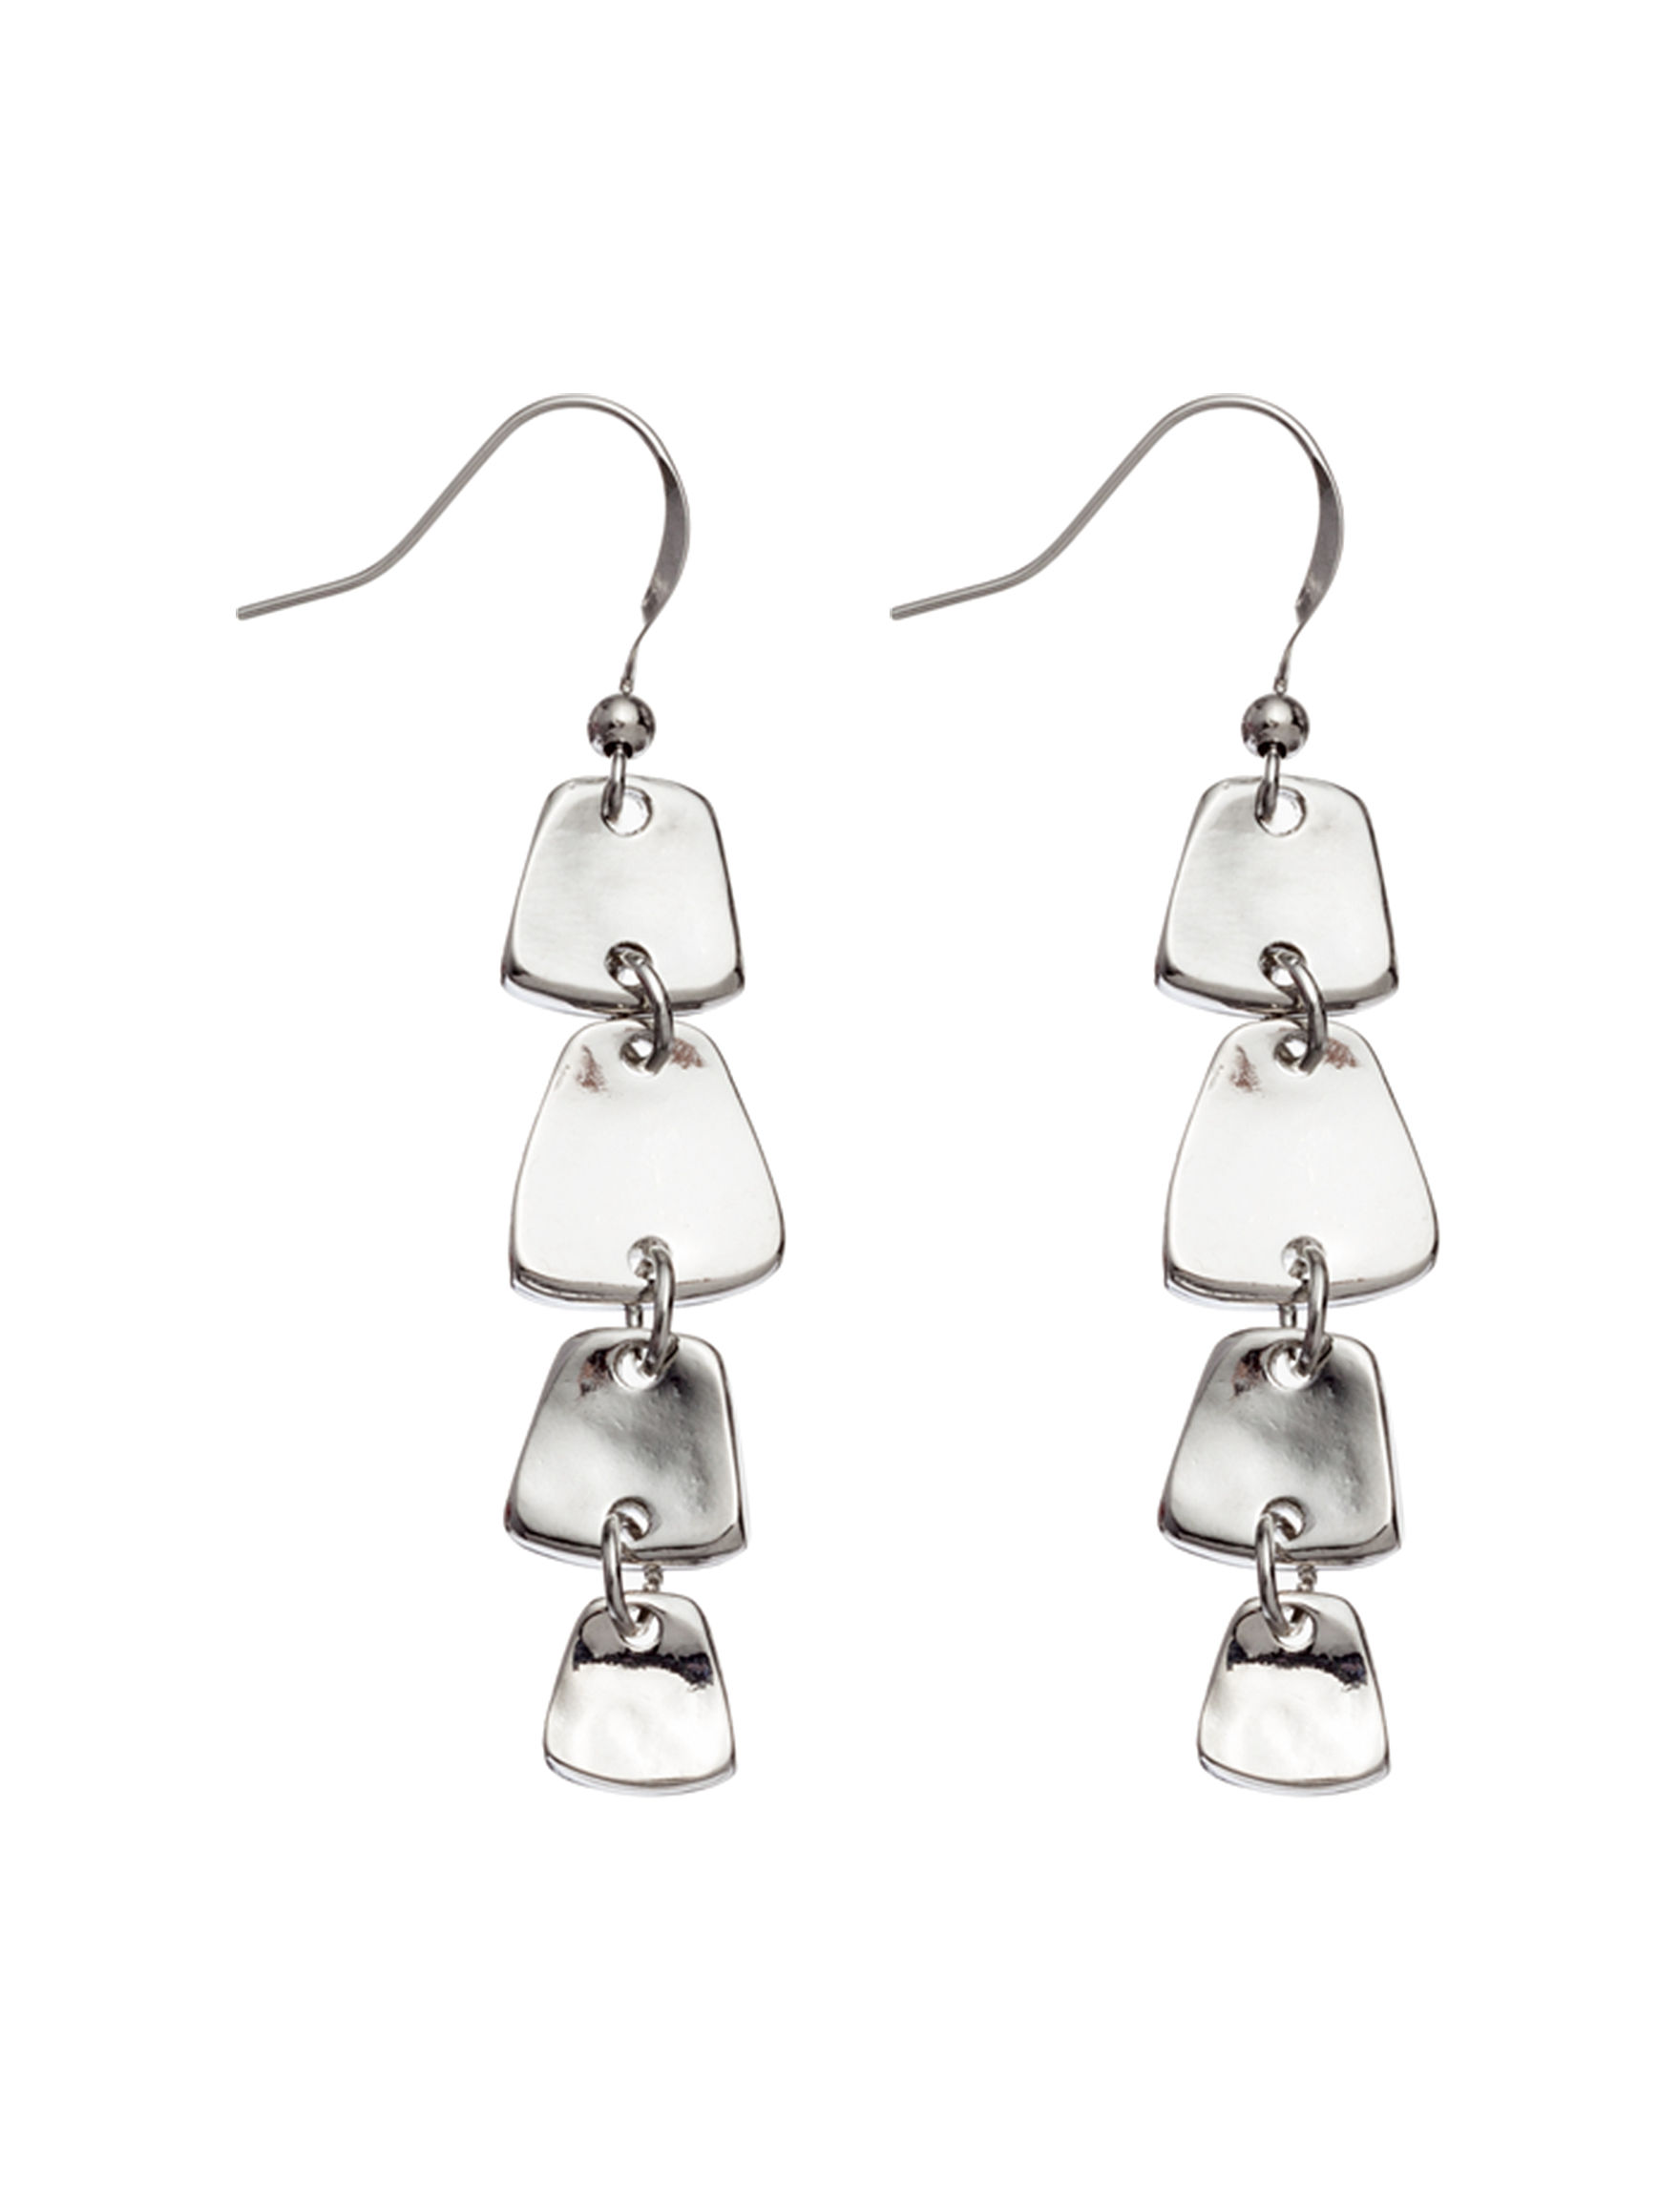 Hannah Silver Drops Earrings Fashion Jewelry